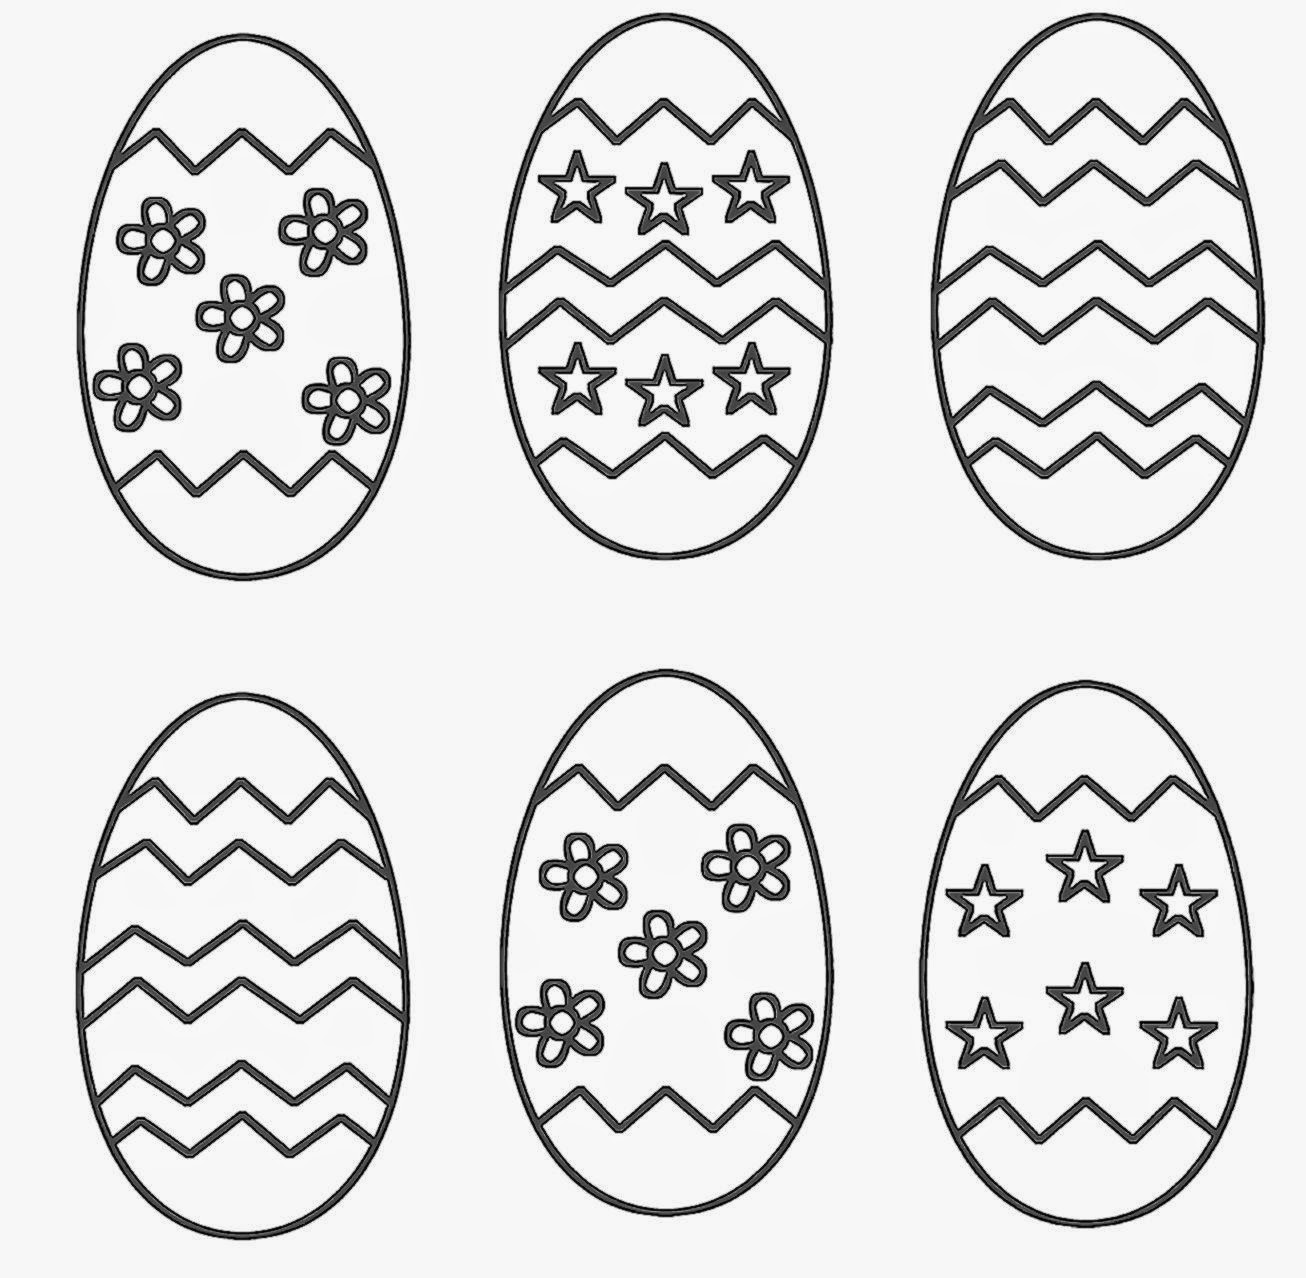 Genius image intended for easter egg printable coloring pages